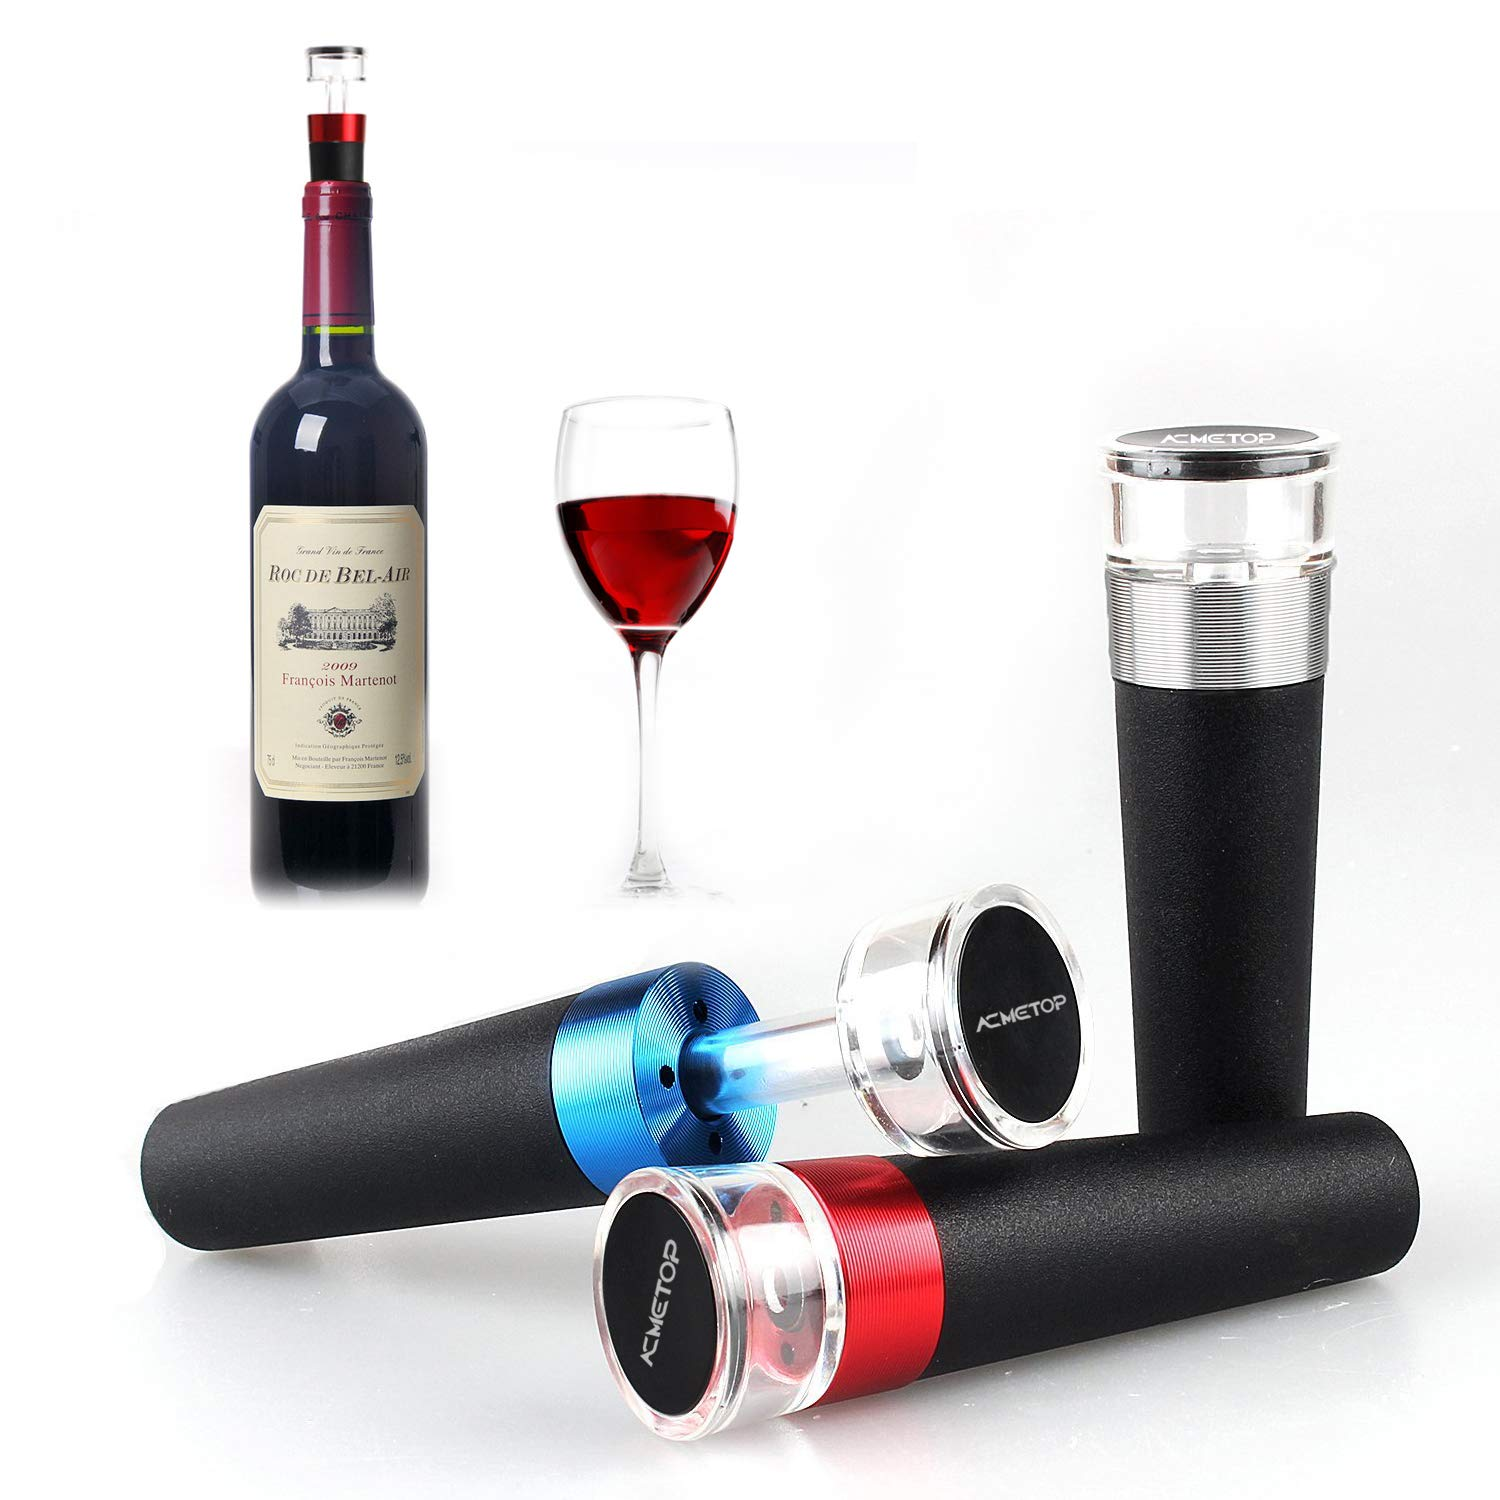 ACMETOP Wine Saver-Wine Stopper Vacuum set with 3 wine Bottle Stoppers-Wine Preserver Vacuum Pump and Rubber Wine Stopper Set To Preserve Wine Flavor and Fresh up to 7 days